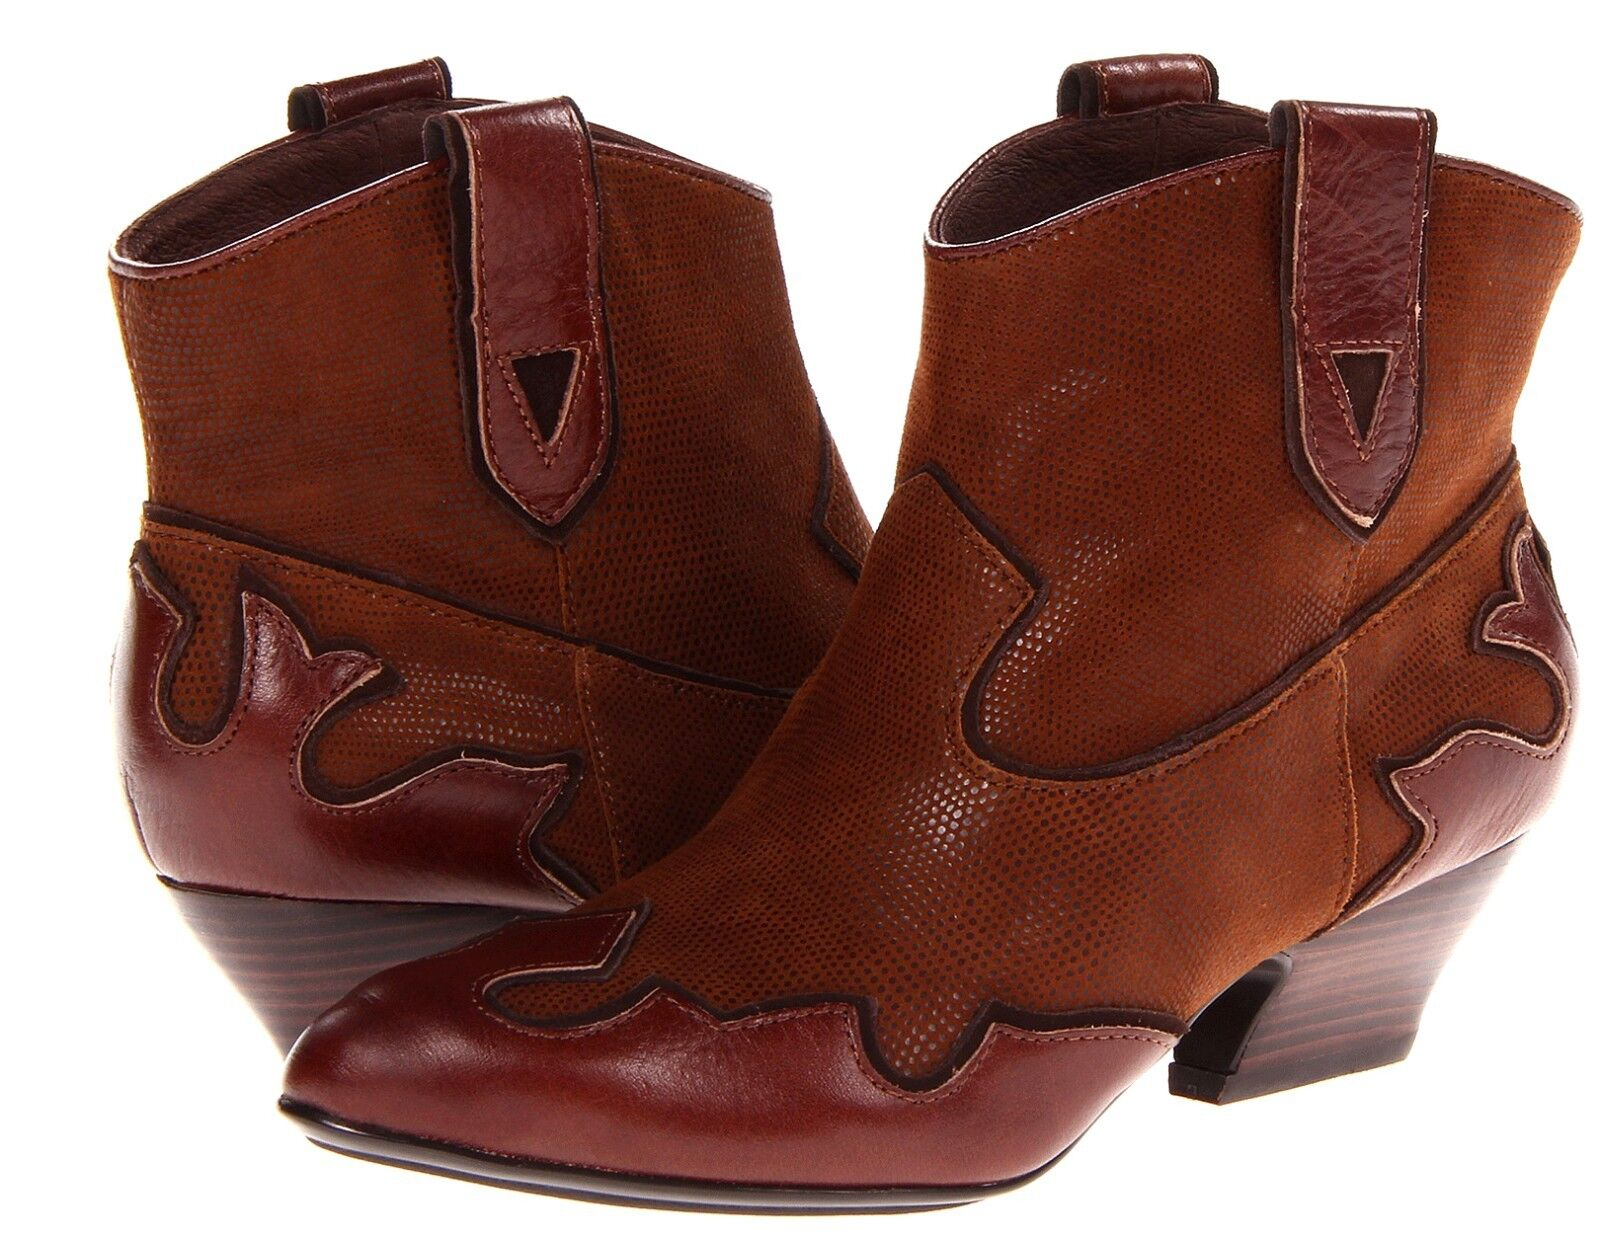 New Isola Odin leather pull-on ankle boots western women's sz US 7